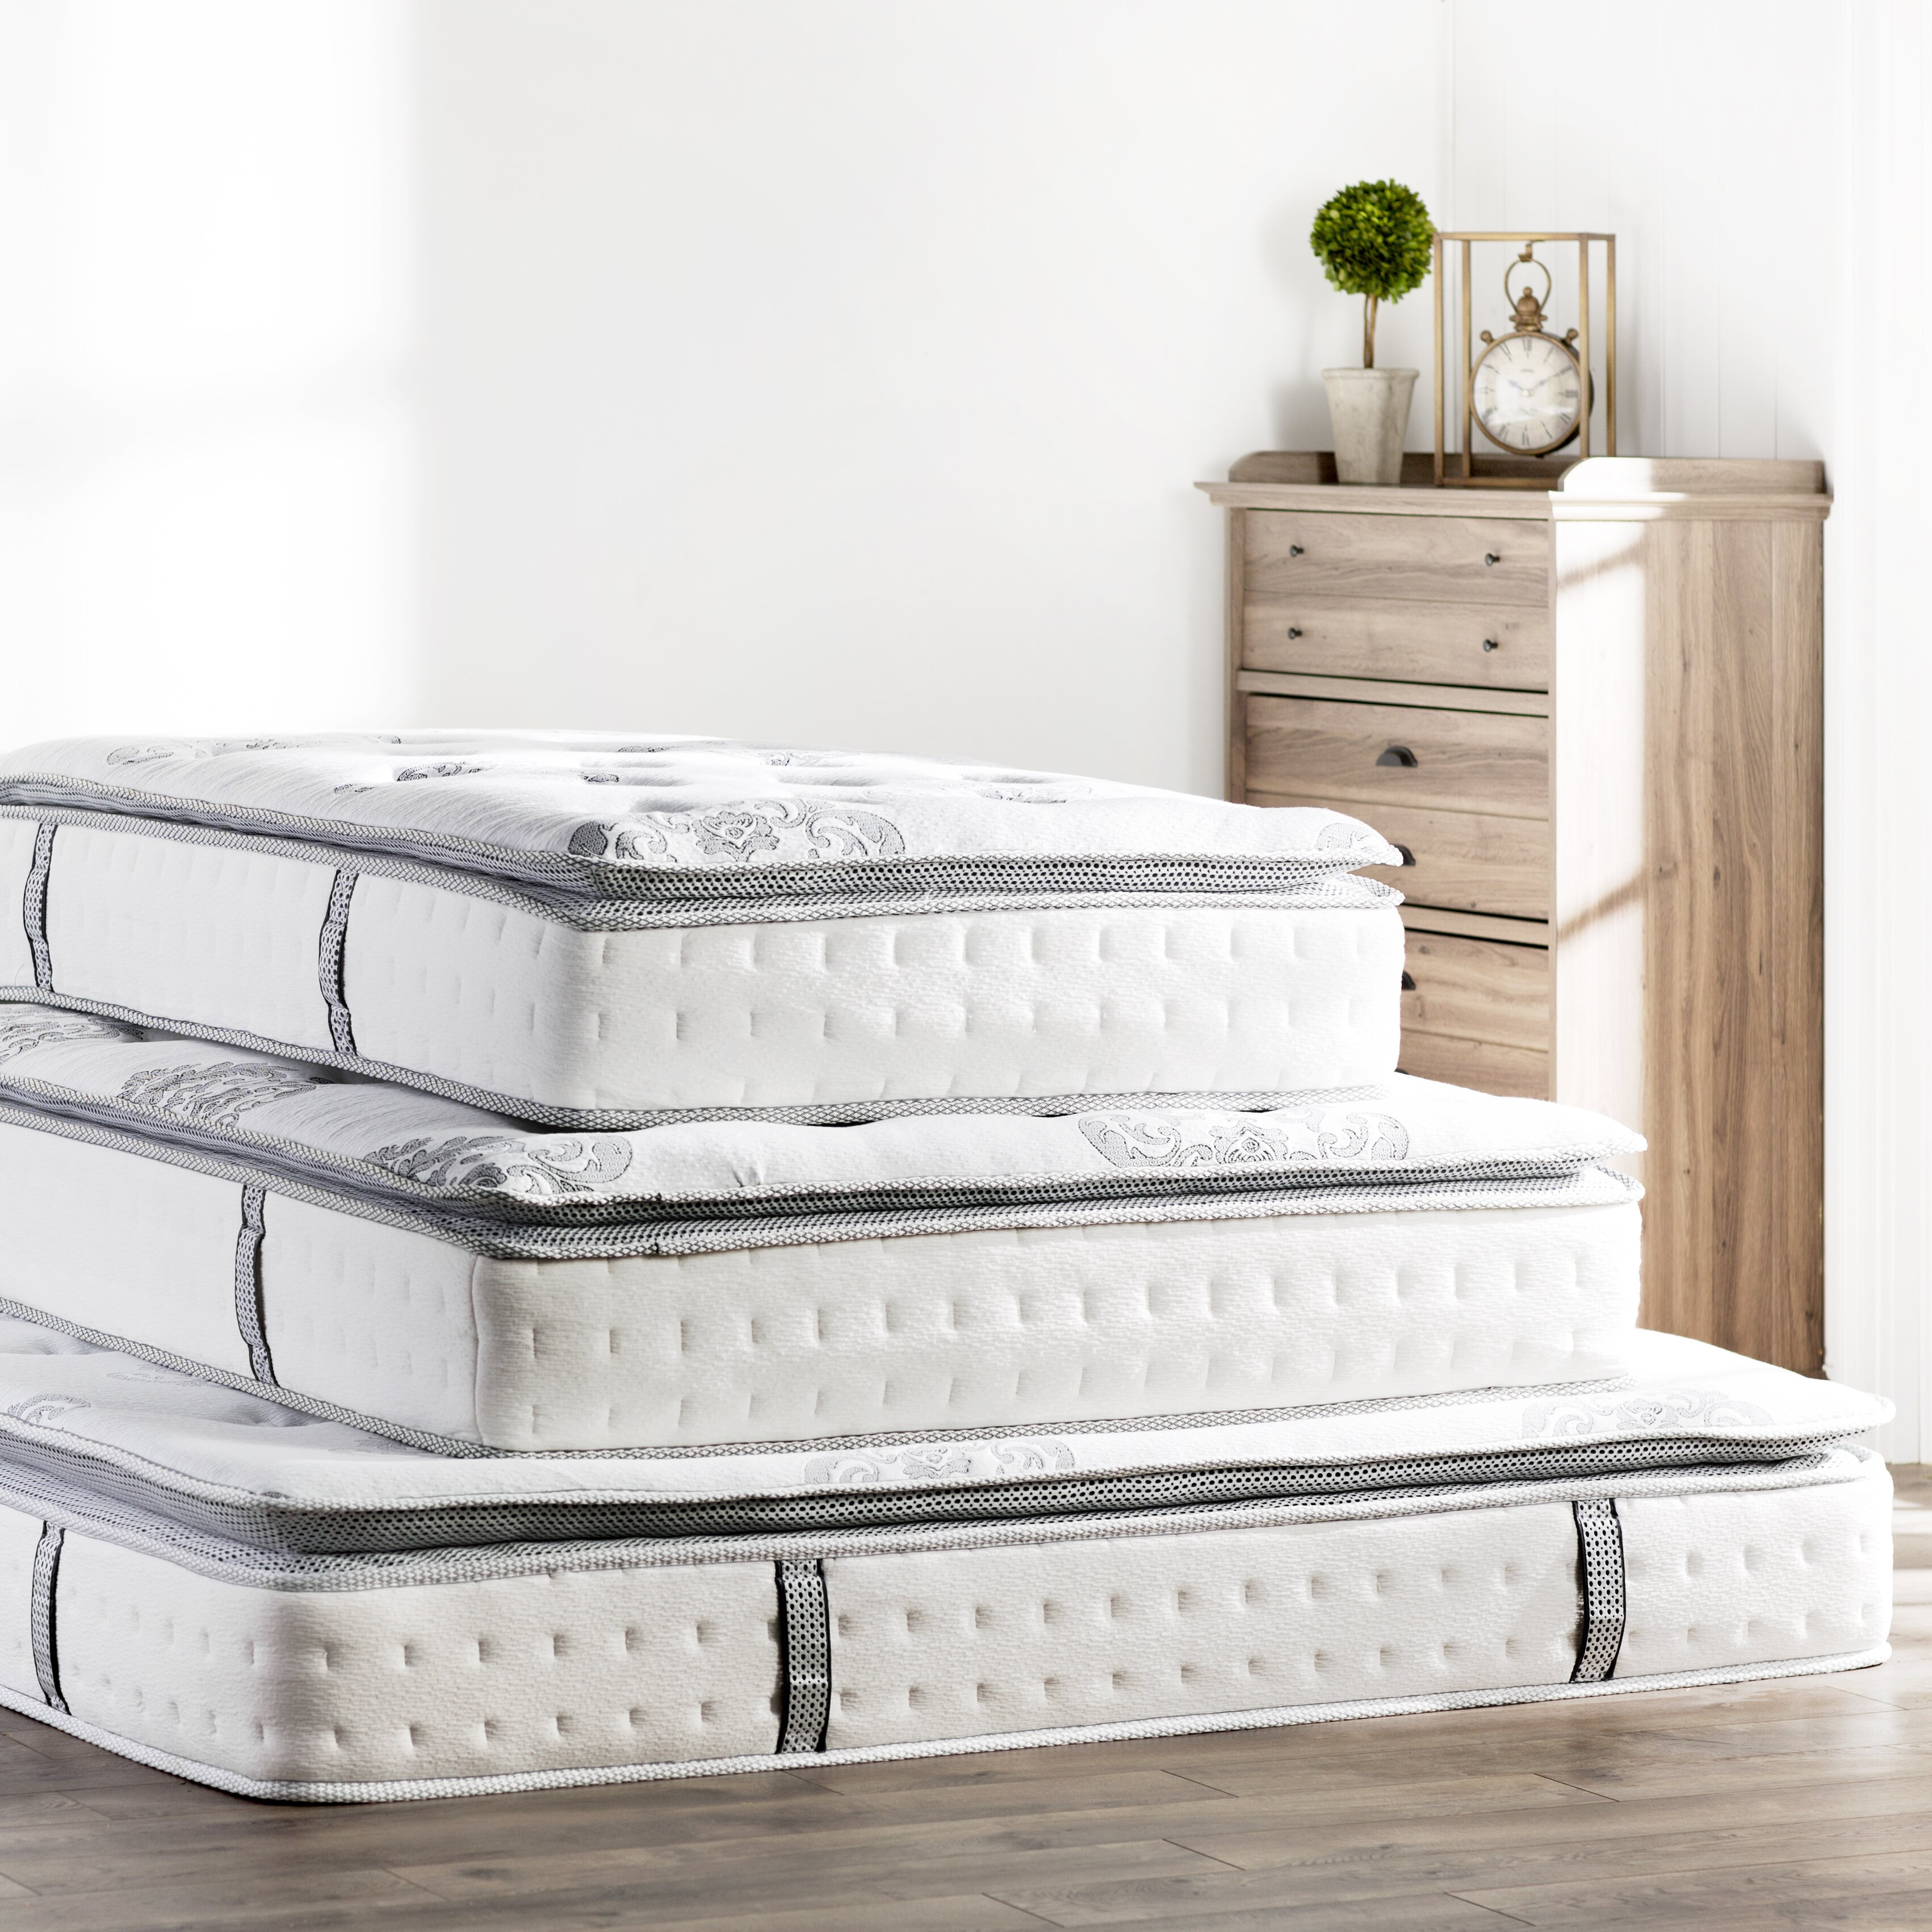 "Classic Brands Mercer 12"" Plush Mattress & Reviews"